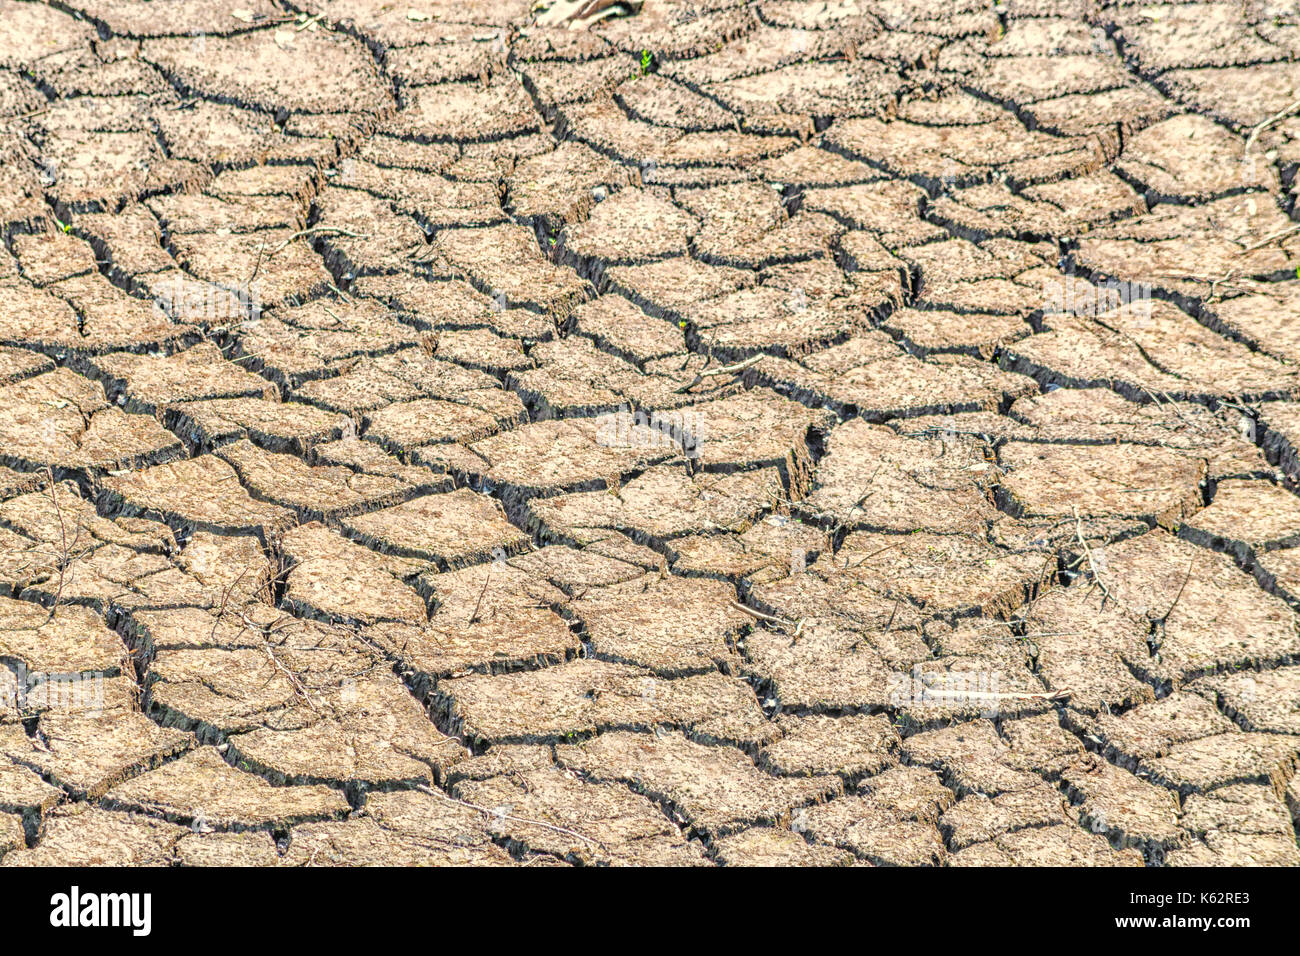 Cracked earth, soil large drought. Soil structure and dry mud, dried riverbed. - Stock Image